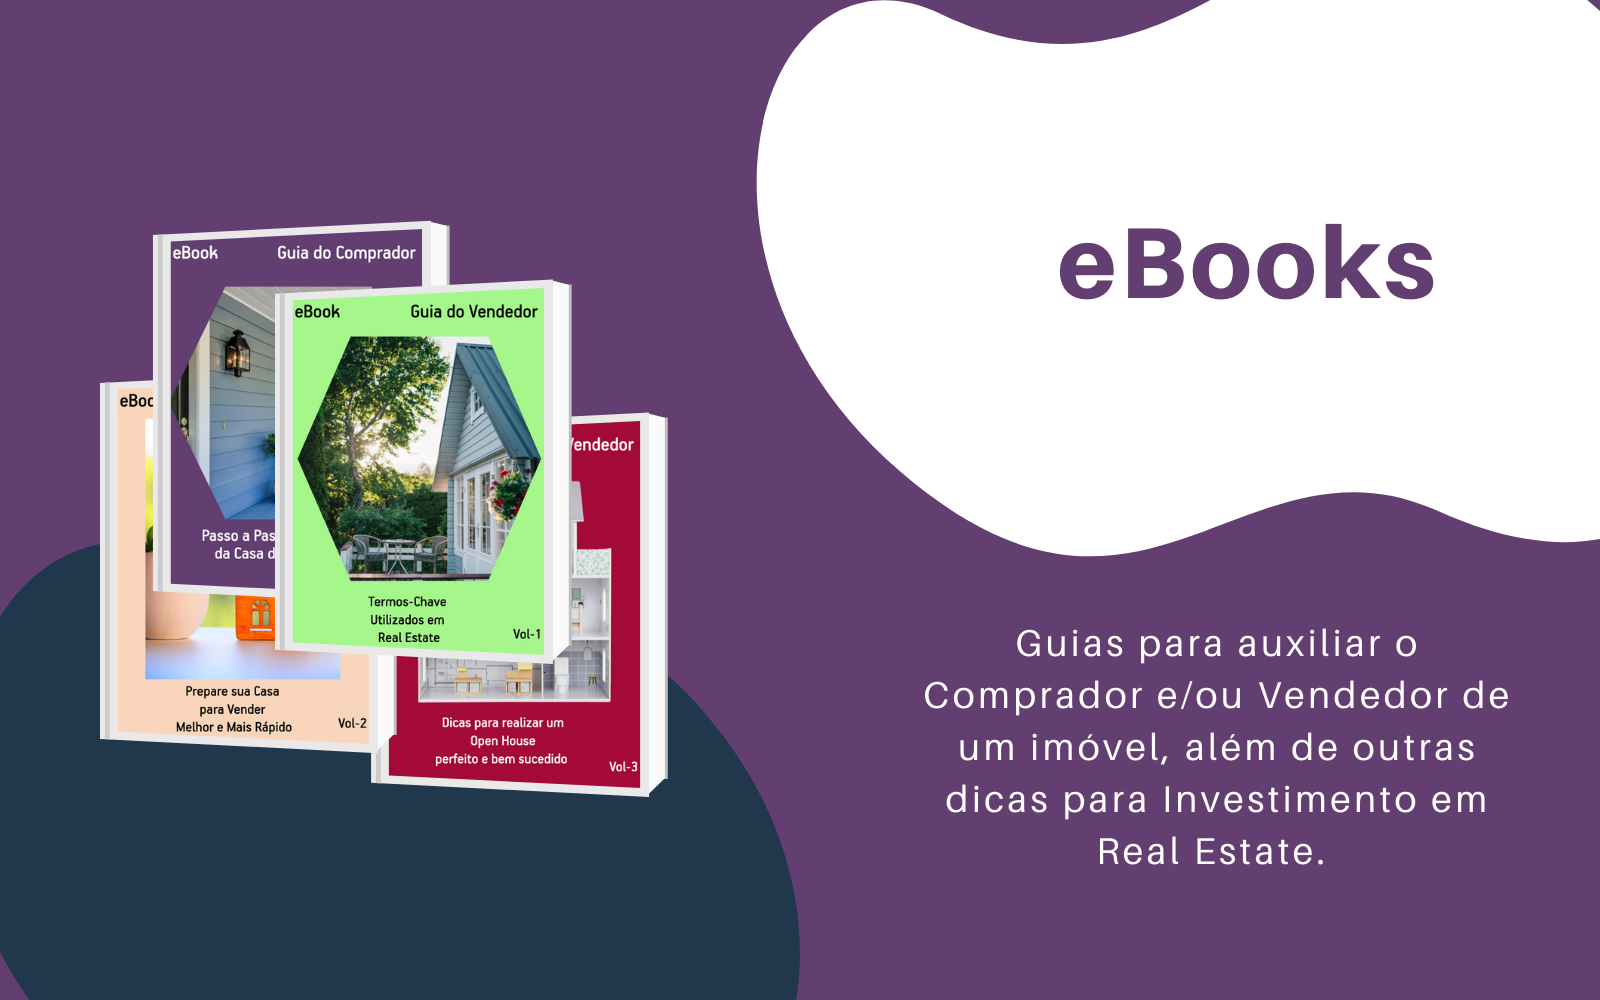 Banner For The Ebooks Page Showing Covers Of Some Volumes And An Explanation Of The Content For People Buying Or Selling A House